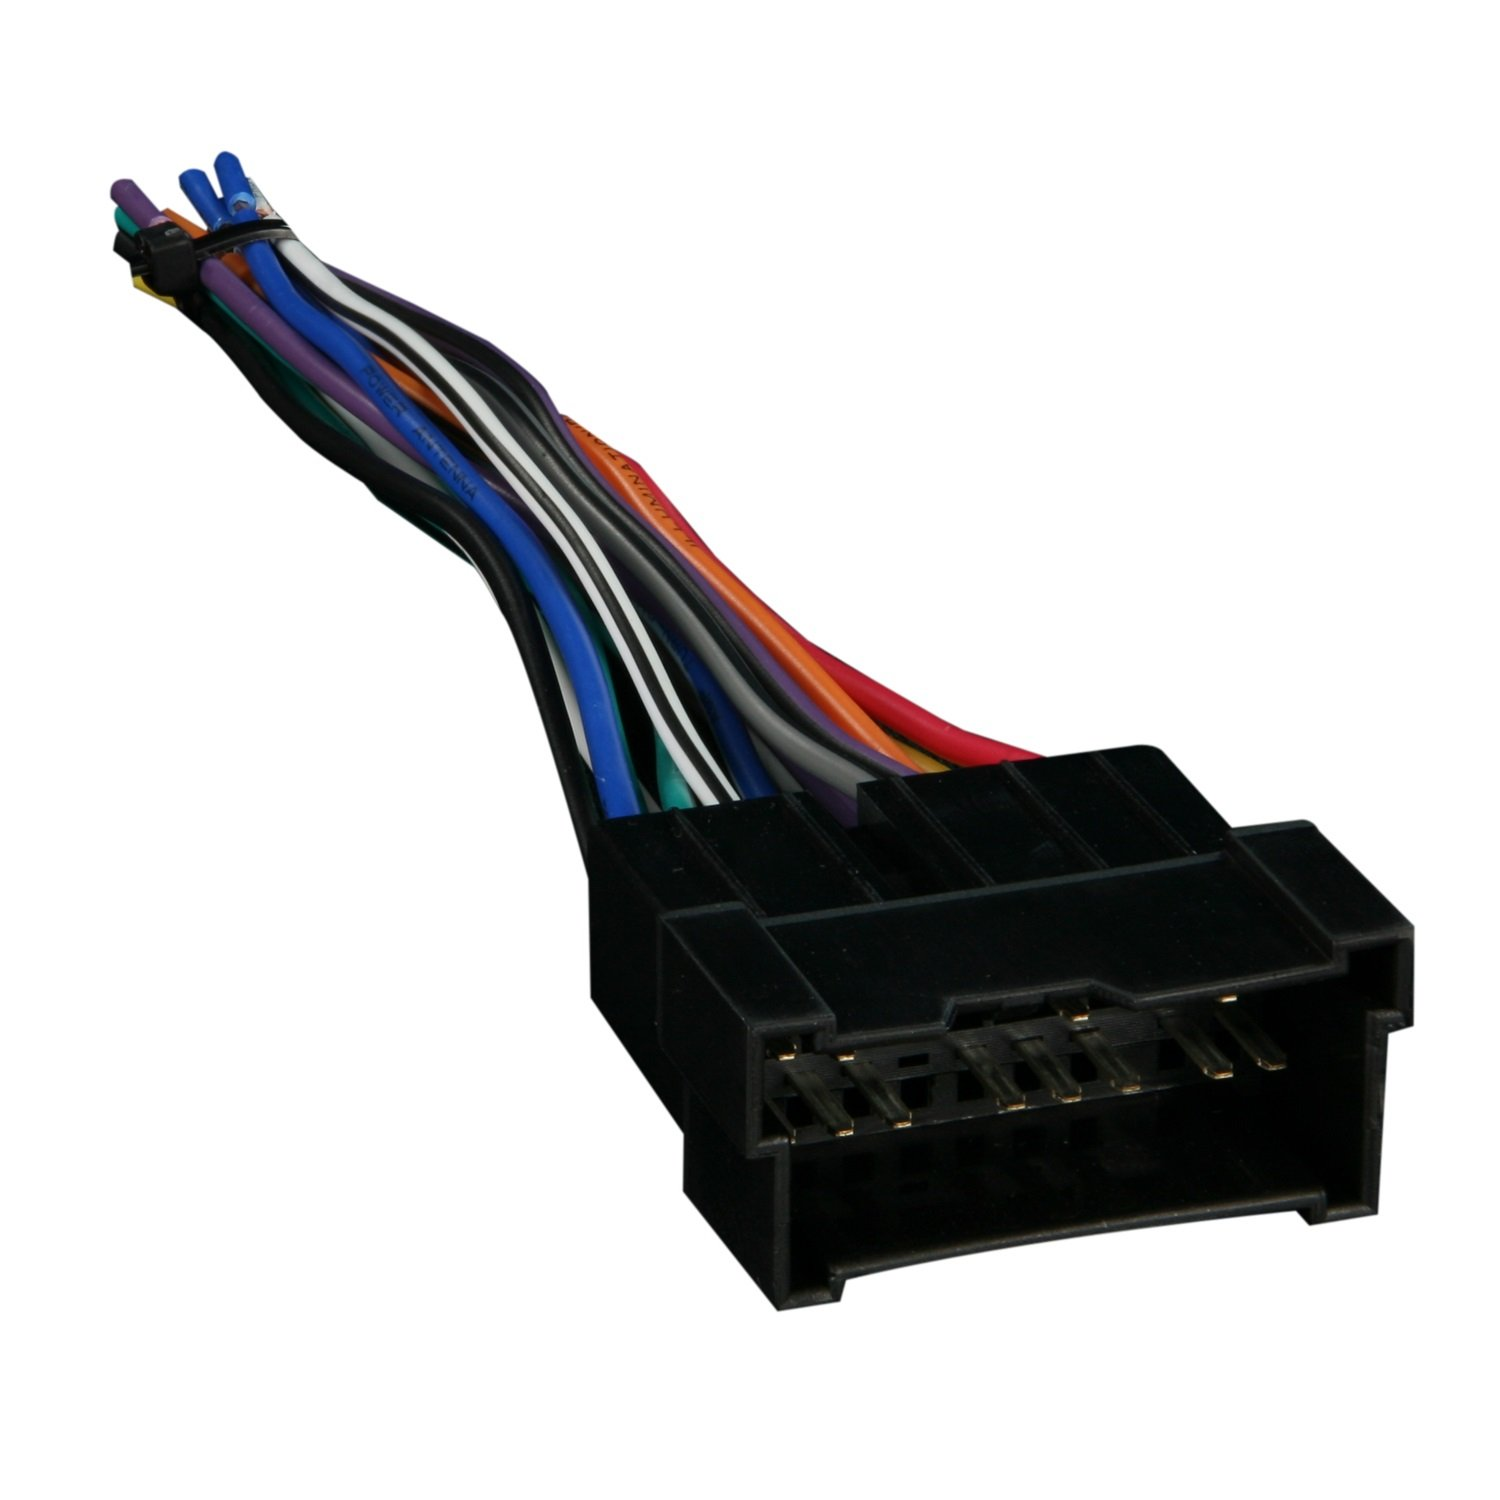 617yeBmOquL._SL1500_ amazon com metra 70 7301 radio wiring harness for hyundai kia 99 Wire Harness Assembly at soozxer.org